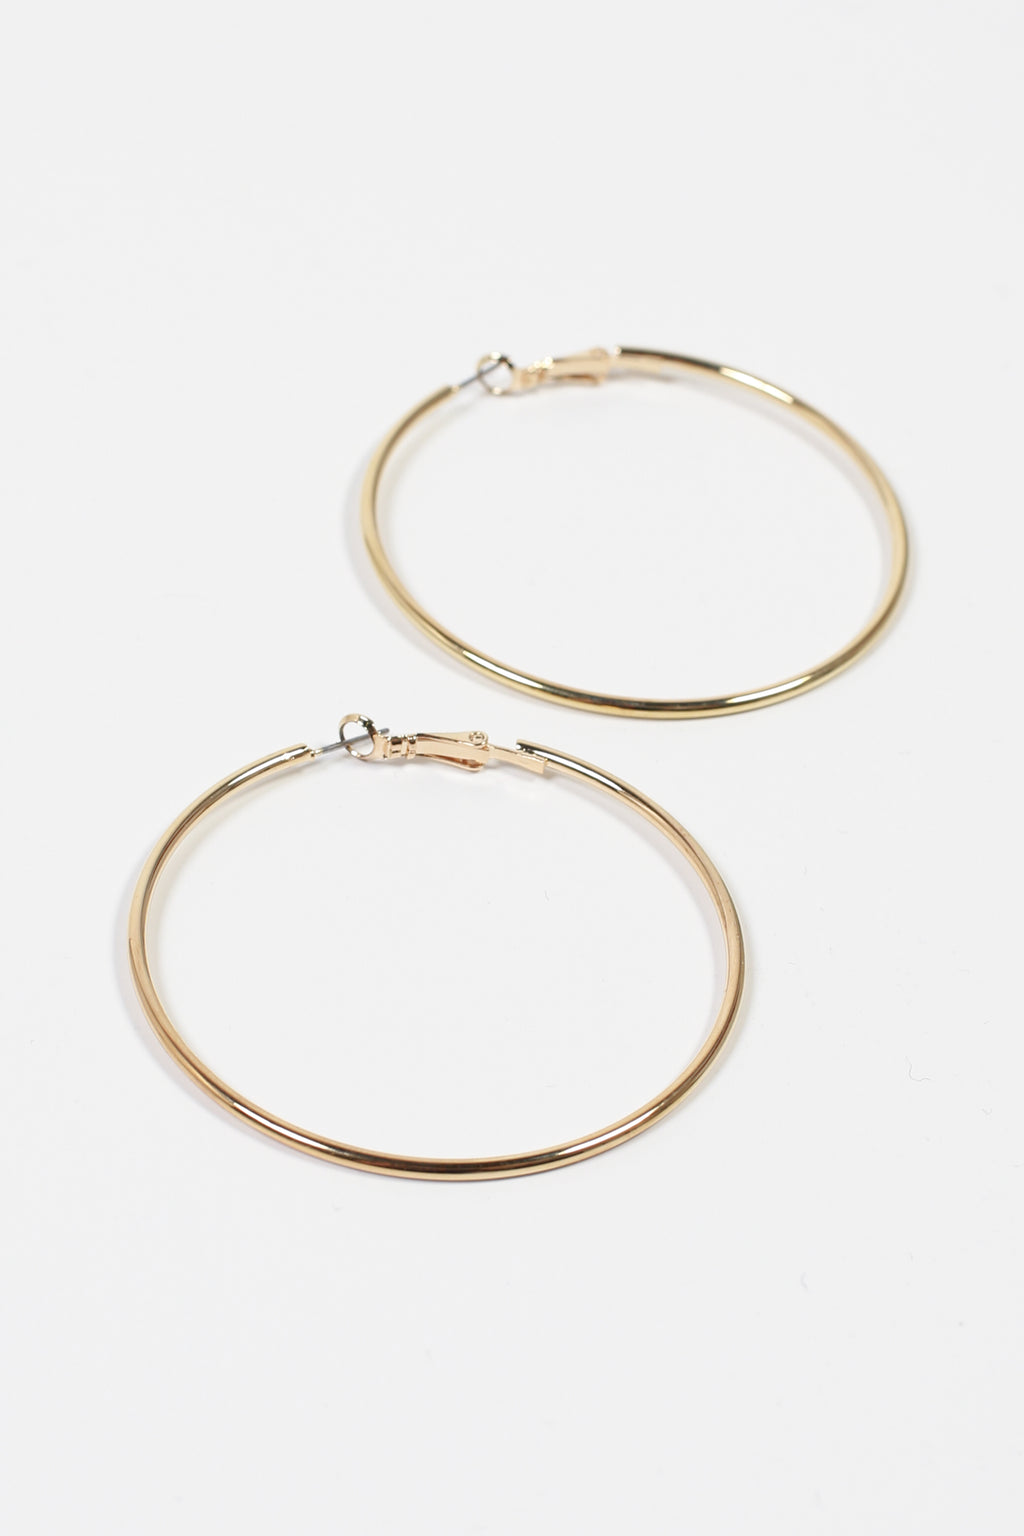 Oversize Gold Thin Hoops